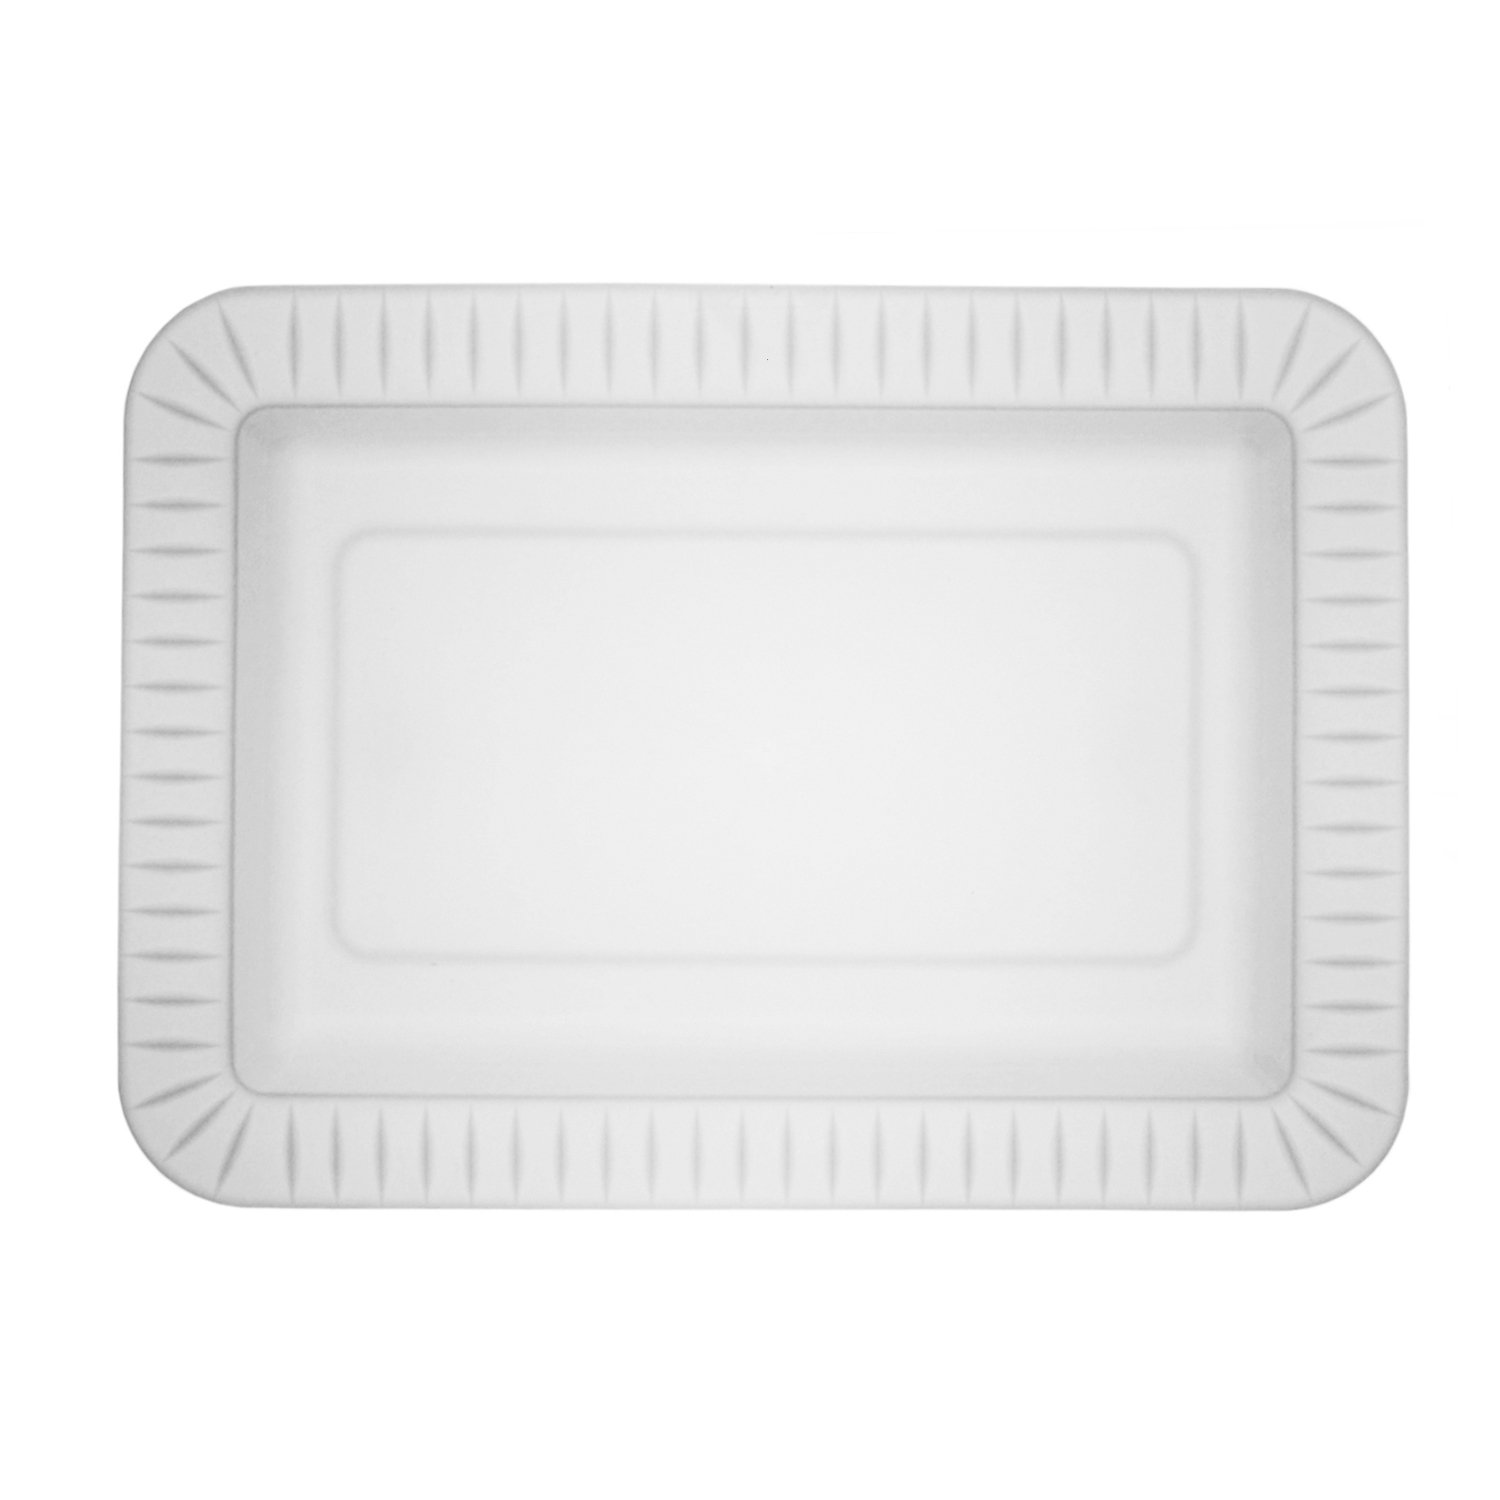 Party Essentials N259702 Party Supplies Tableware, 5x7-Inch, Clear